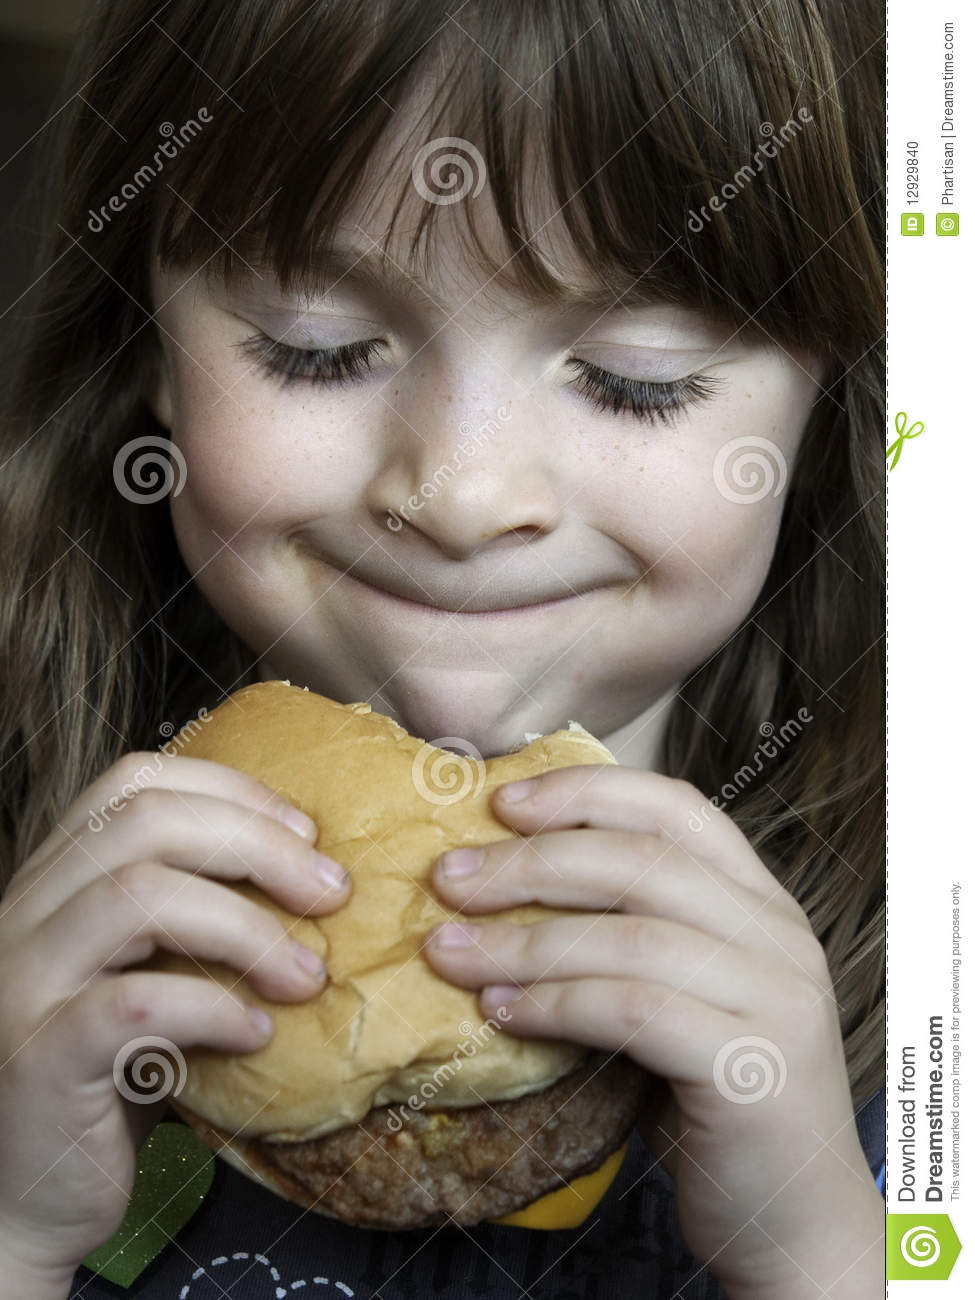 Child Eating Food Images